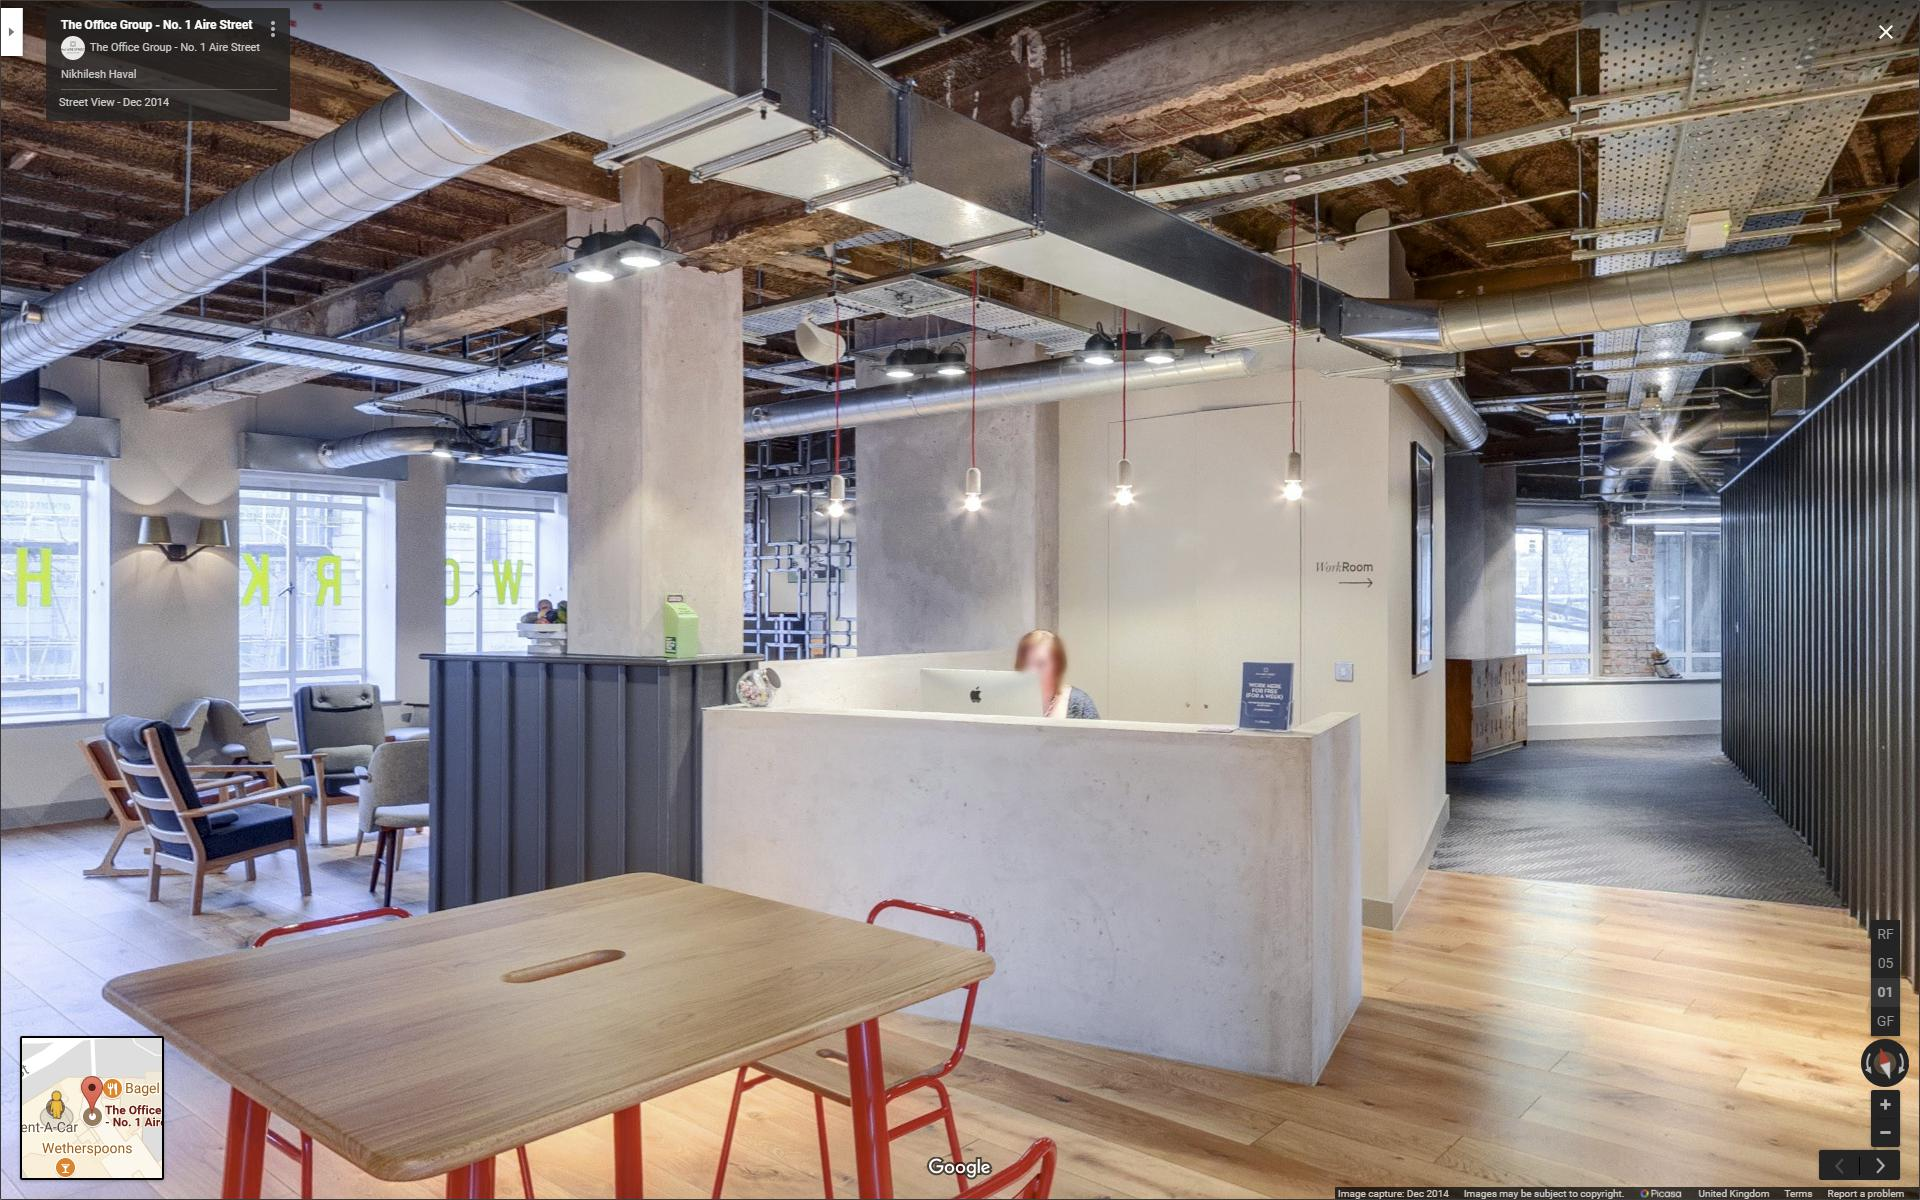 Design Led Serviced Office Google Street View